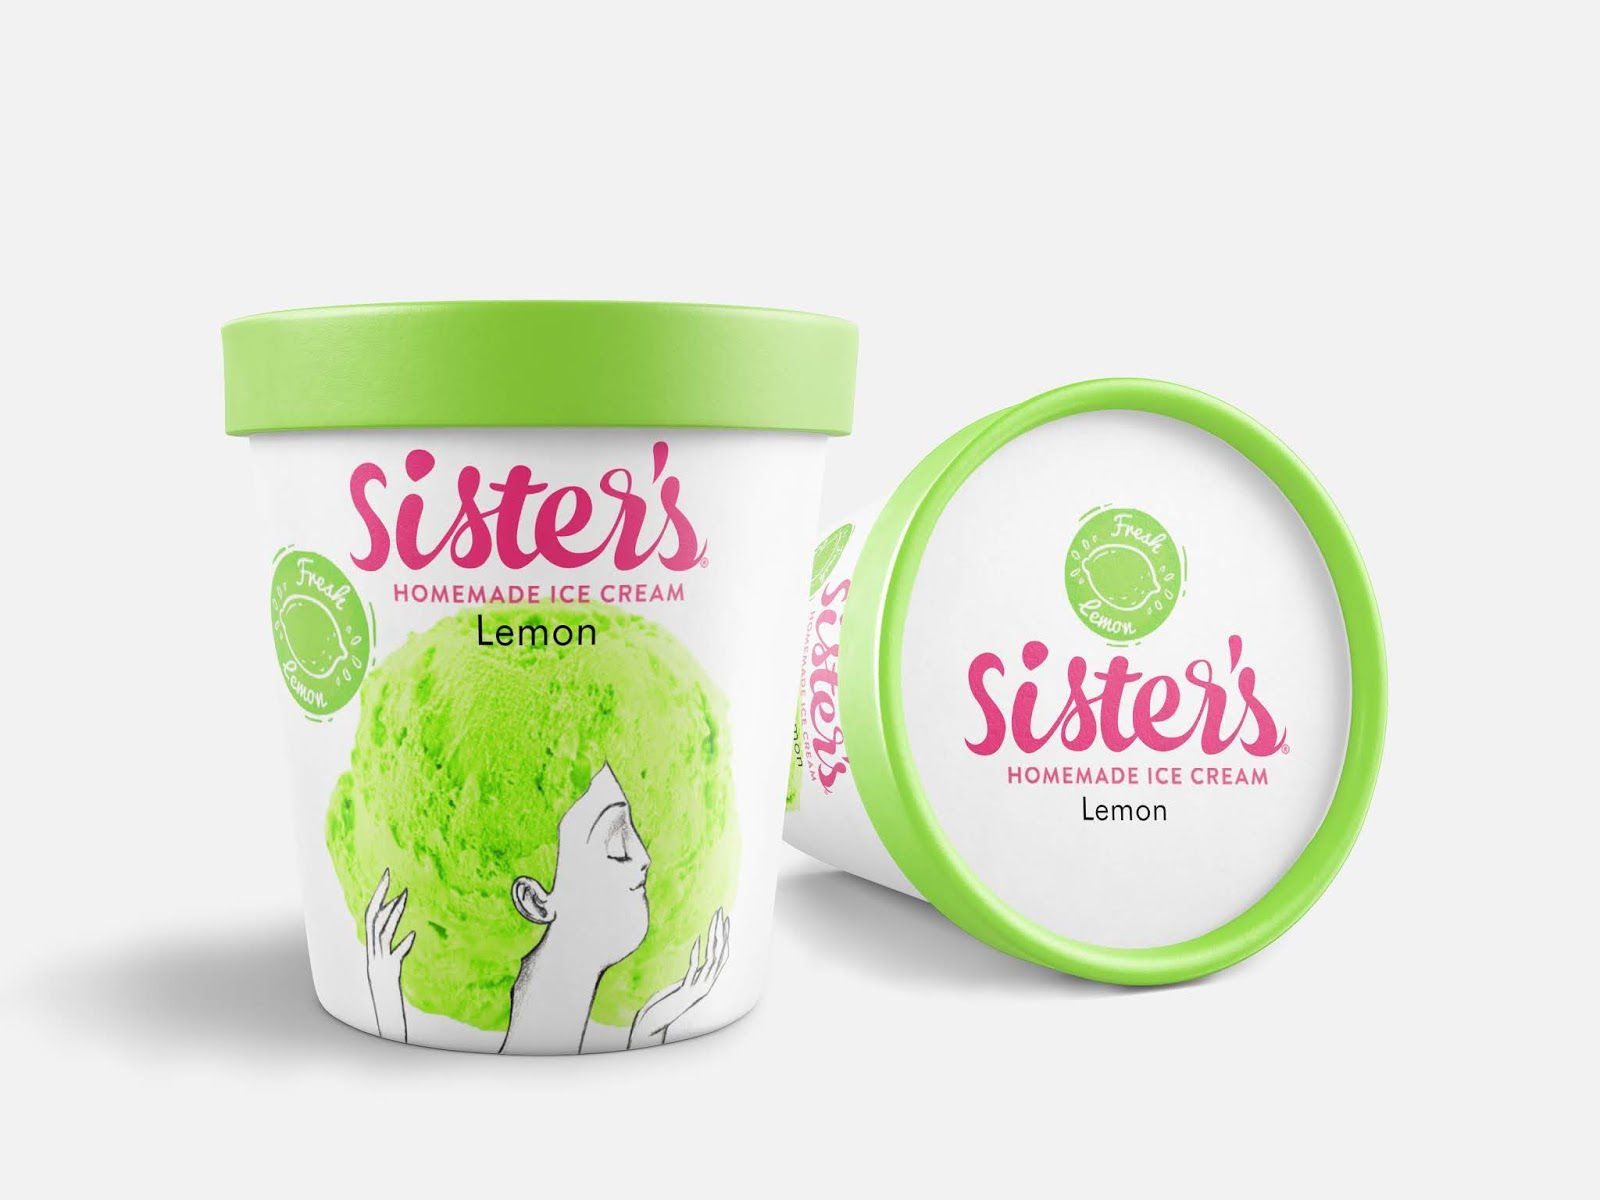 Sister's homemade Ice Cream (glaces) I Design : Azadeh Gholizadeh, Iran (mai 2020)